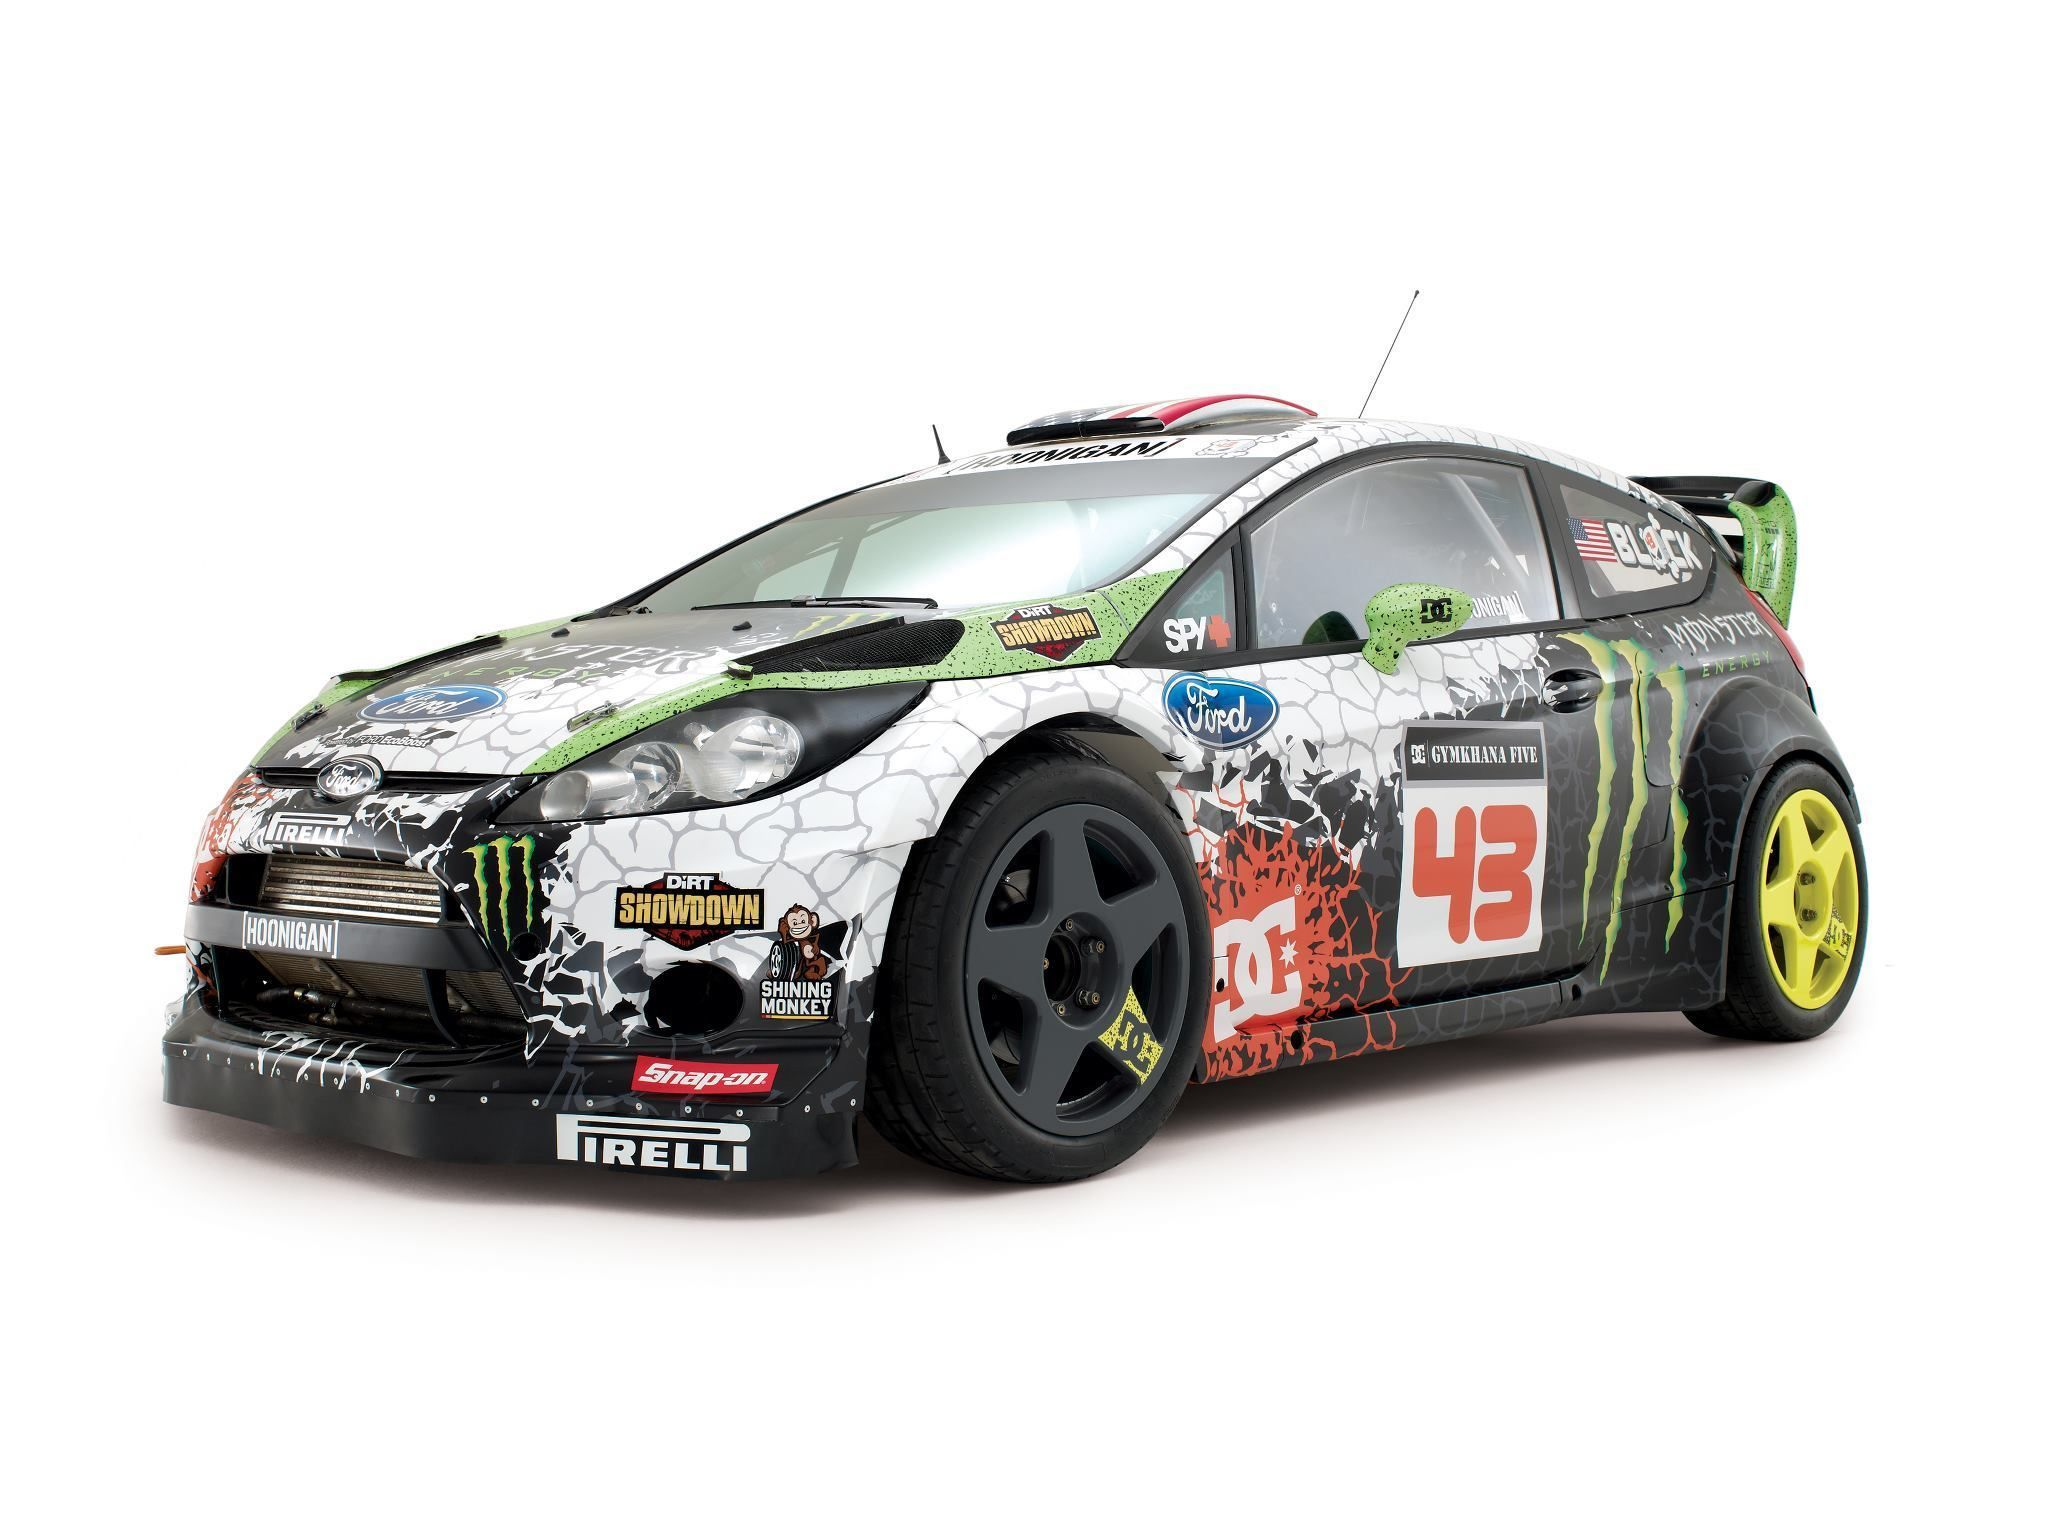 The 2012 ken block ford fiesta rs photo by ken block on february 2012 at ken block ford fiesta rs unveiling world rally championship photos